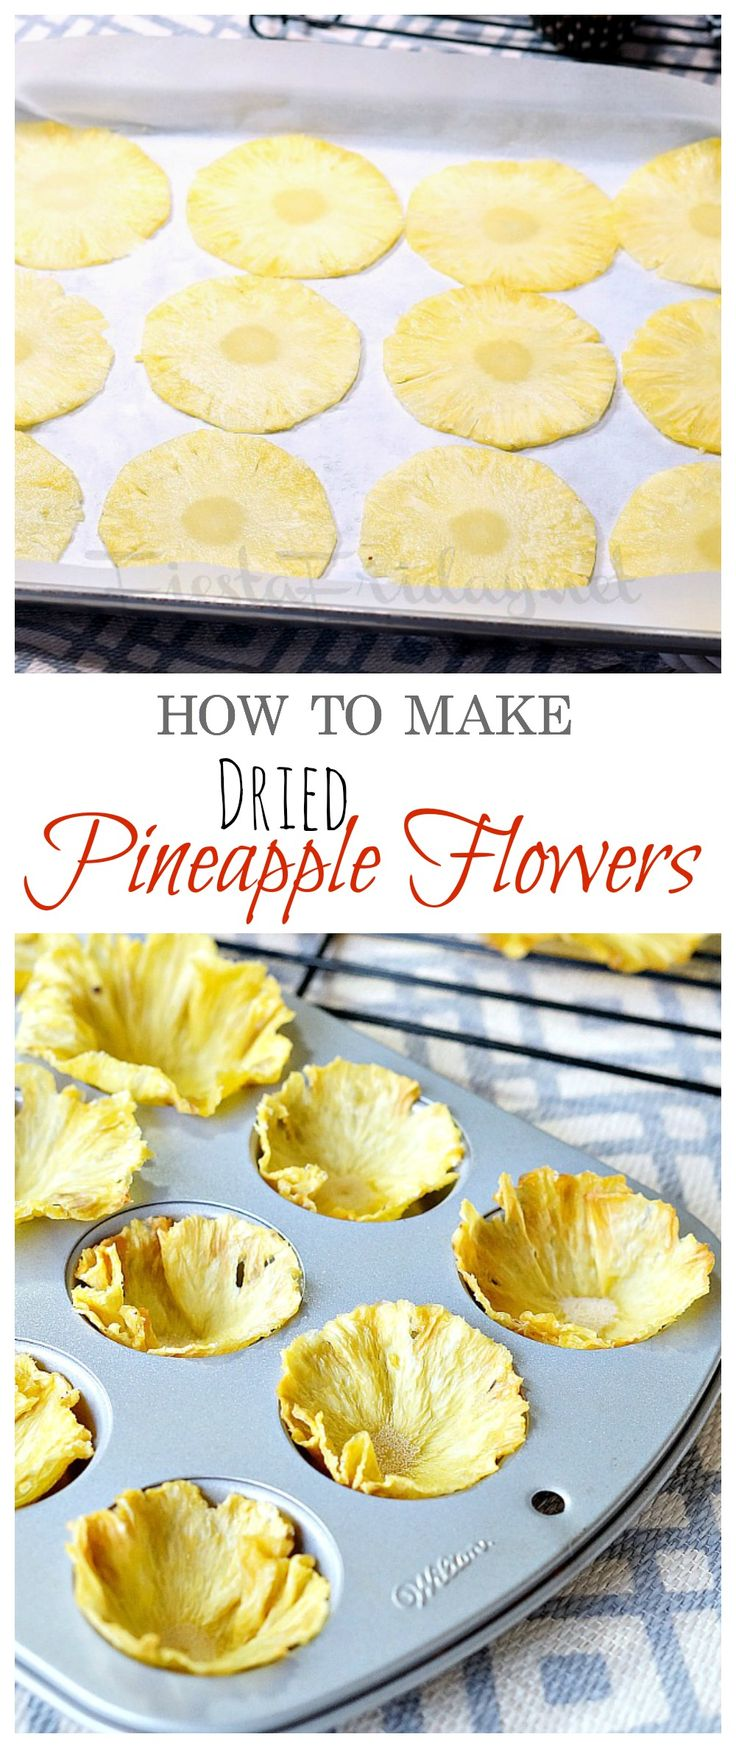 Step-by-step directions on how to make dried pineapple flowers to decorate your cakes or cupcakes.